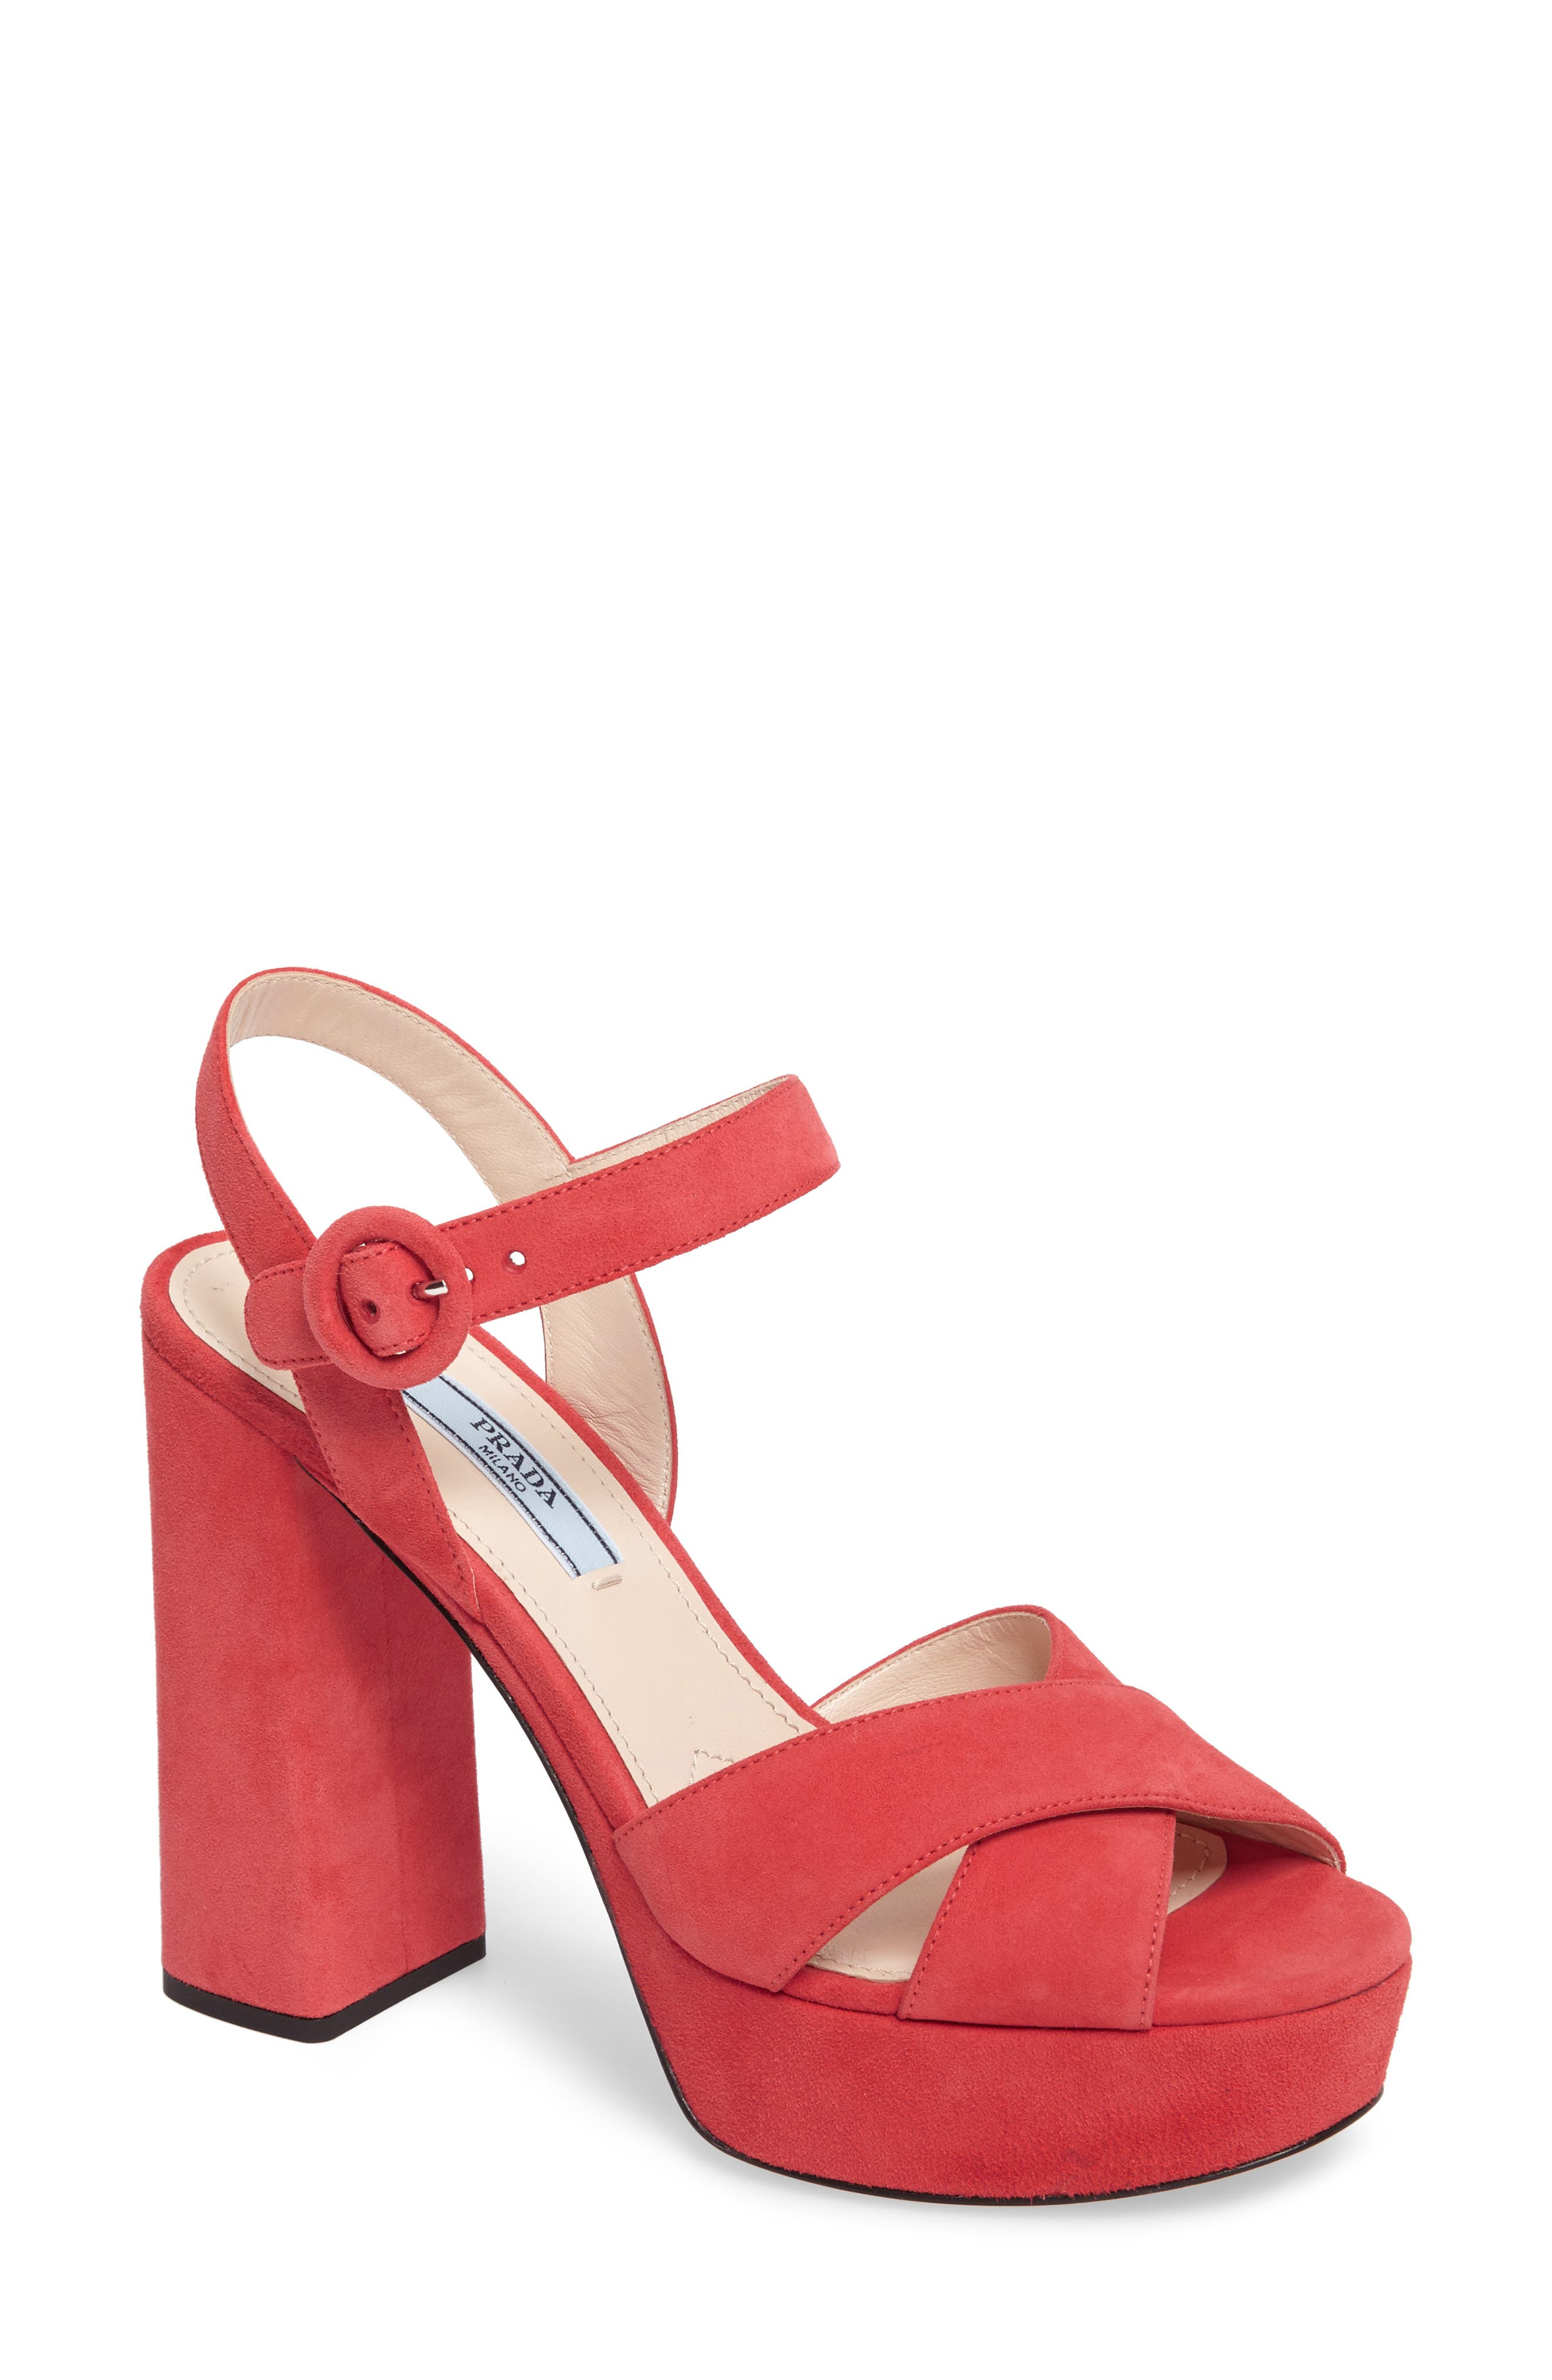 Block Heel Platform Sandal,                         Main,                         color, Corallo